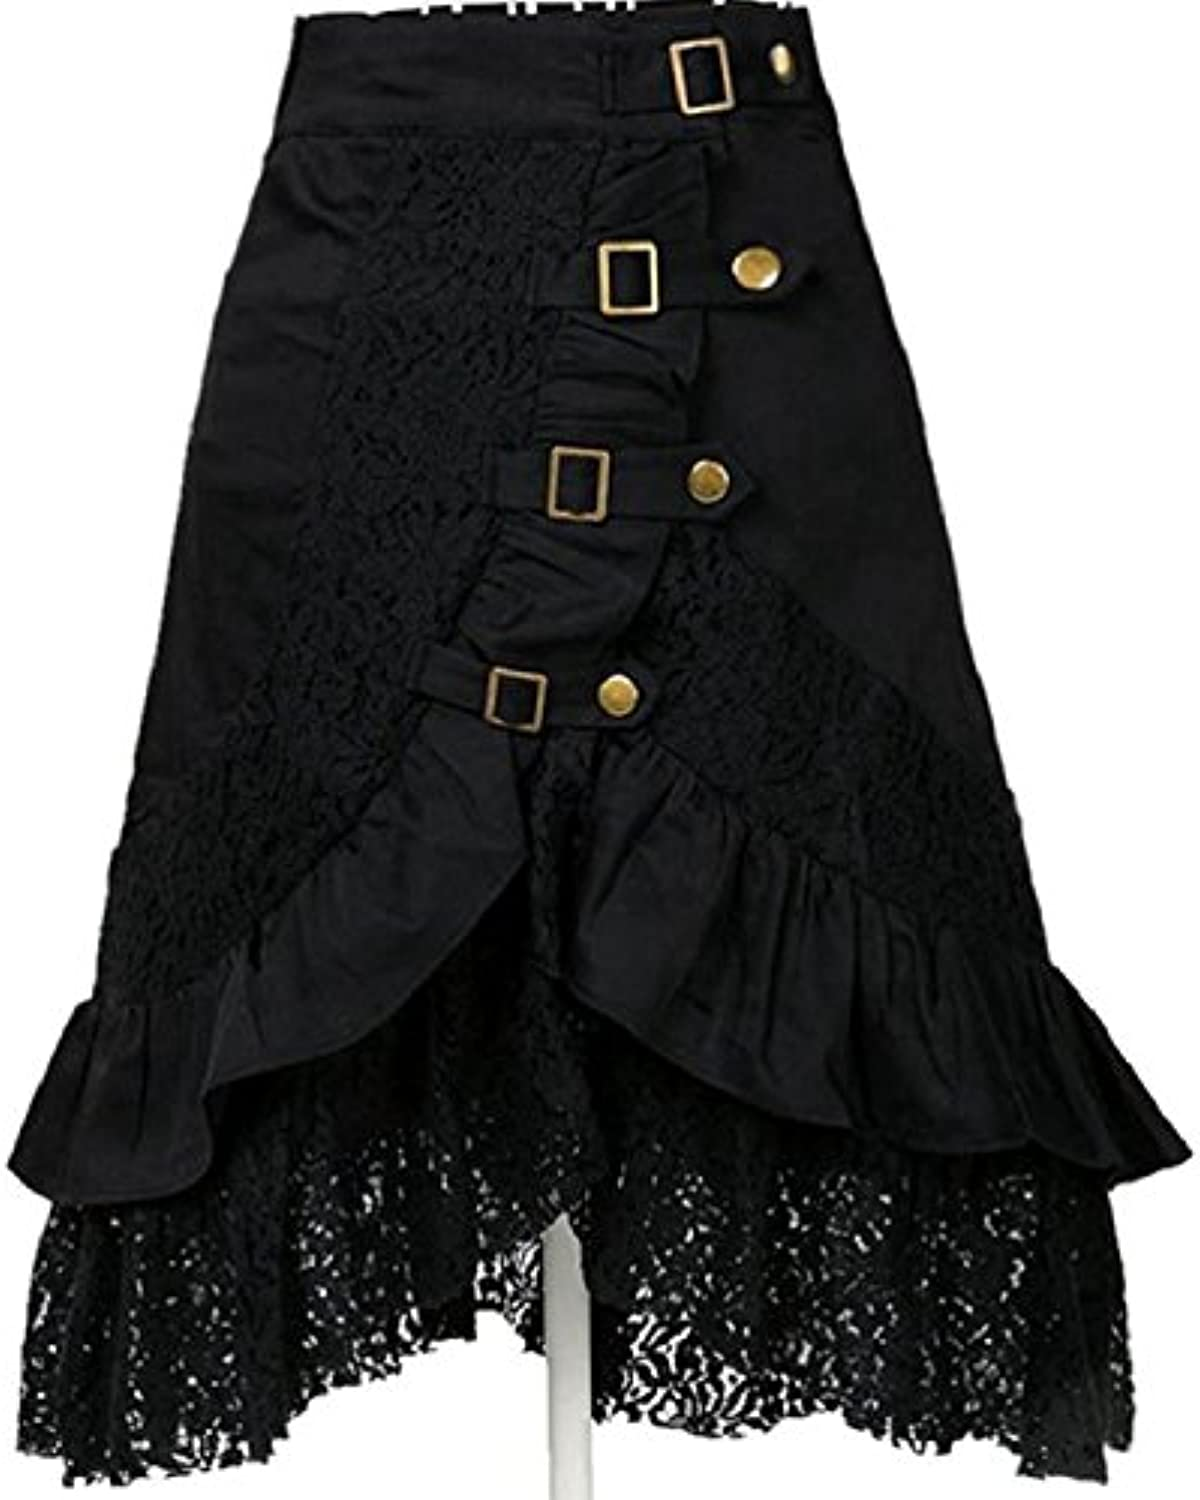 XIURONG Black Dresses with Black Lace and Half Dress